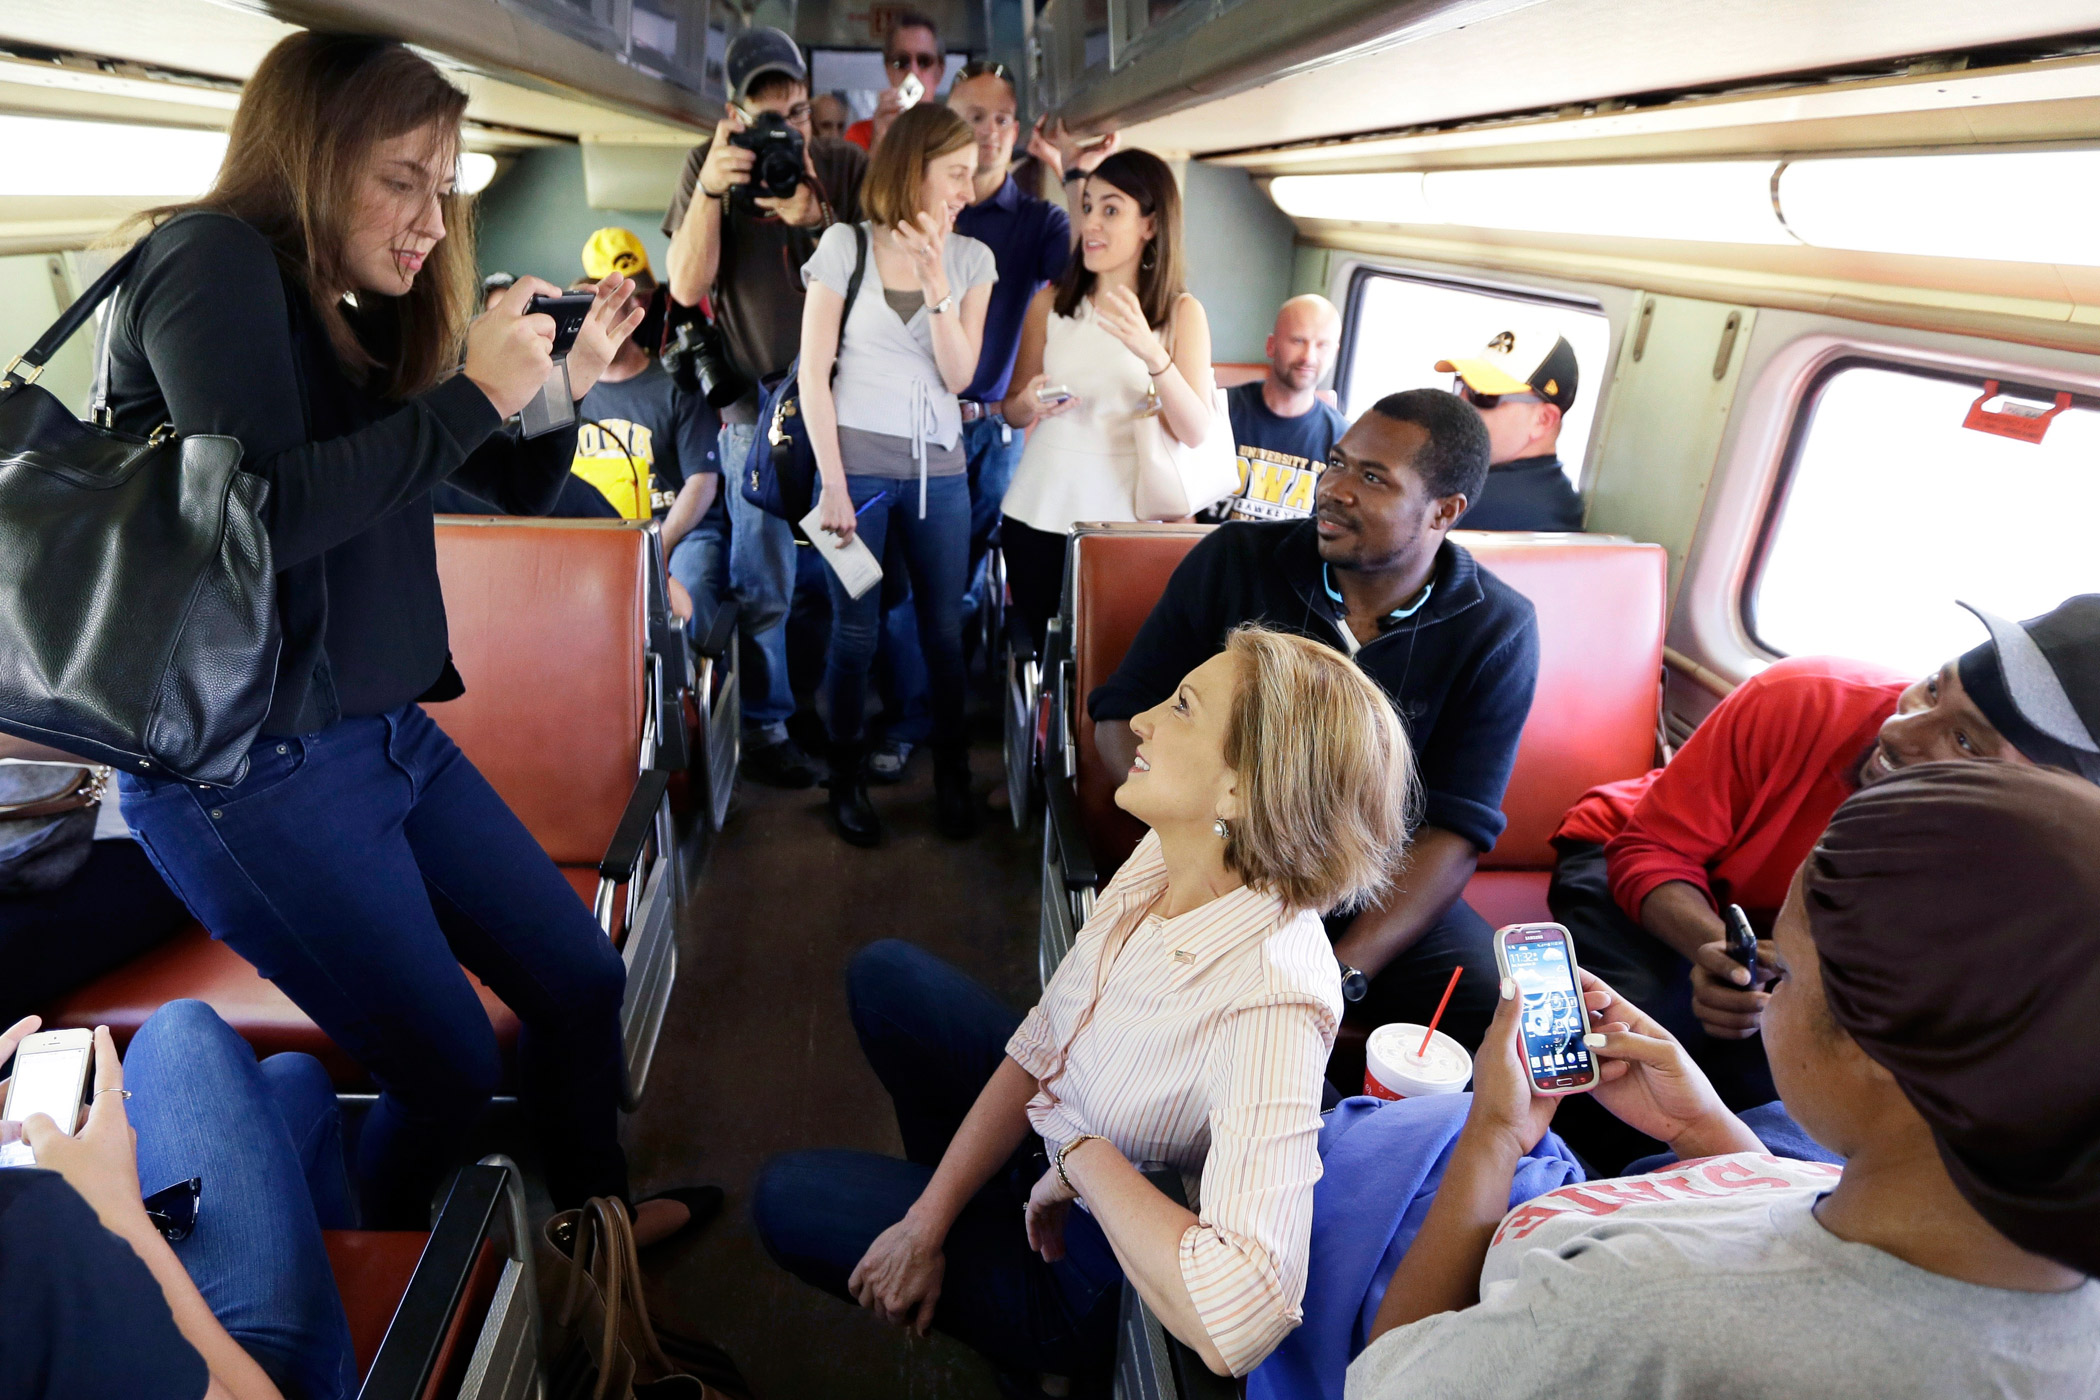 Republican presidential candidate Carly Fiorina, center, rides a train to an event in Iowa City, Iowa on Sept. 26, 2015.